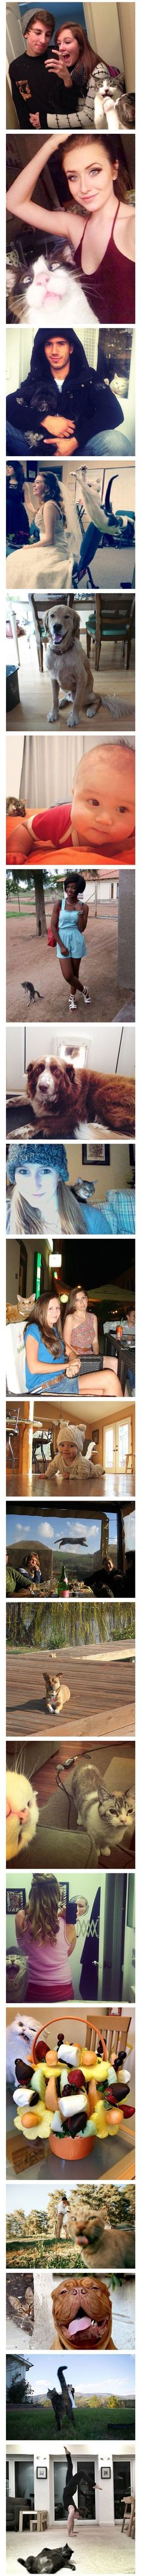 20 Funny Cat Photobombs To Make You Smile MyFunnyPalace - Tap the link now to see all of our cool cat collections!